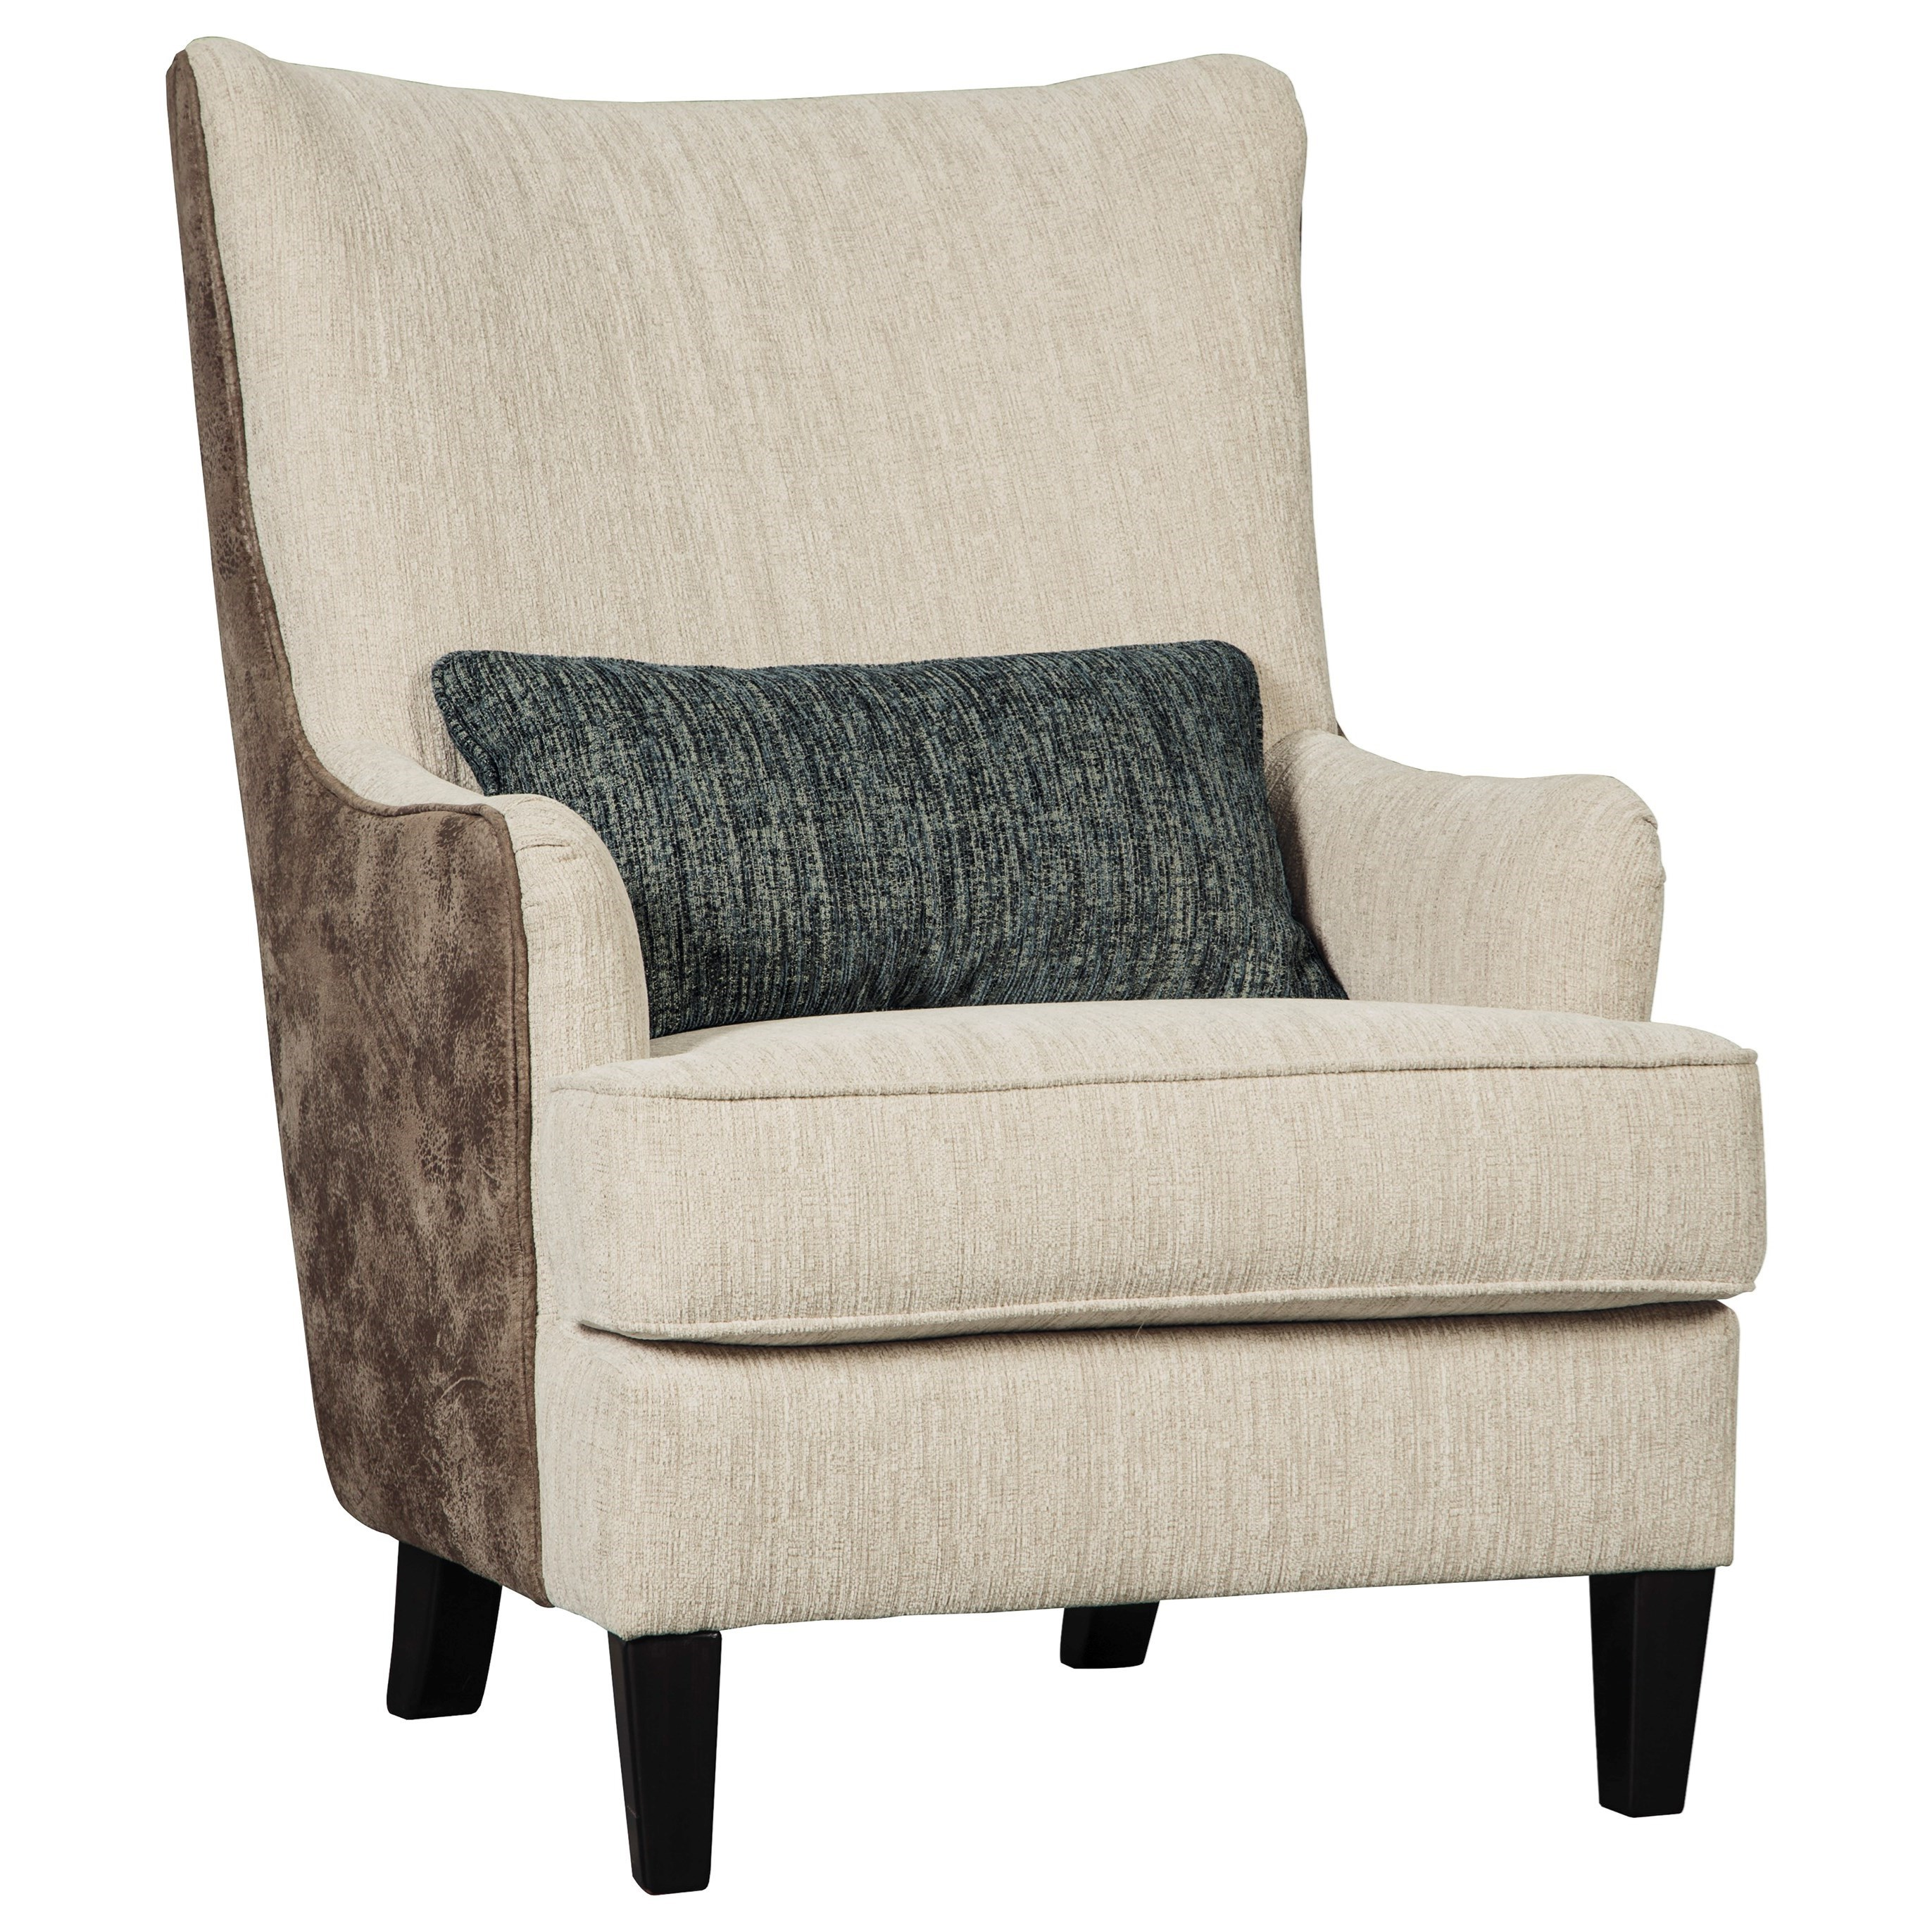 Ashley Silsbee Accent Chair - Item Number: 5540221